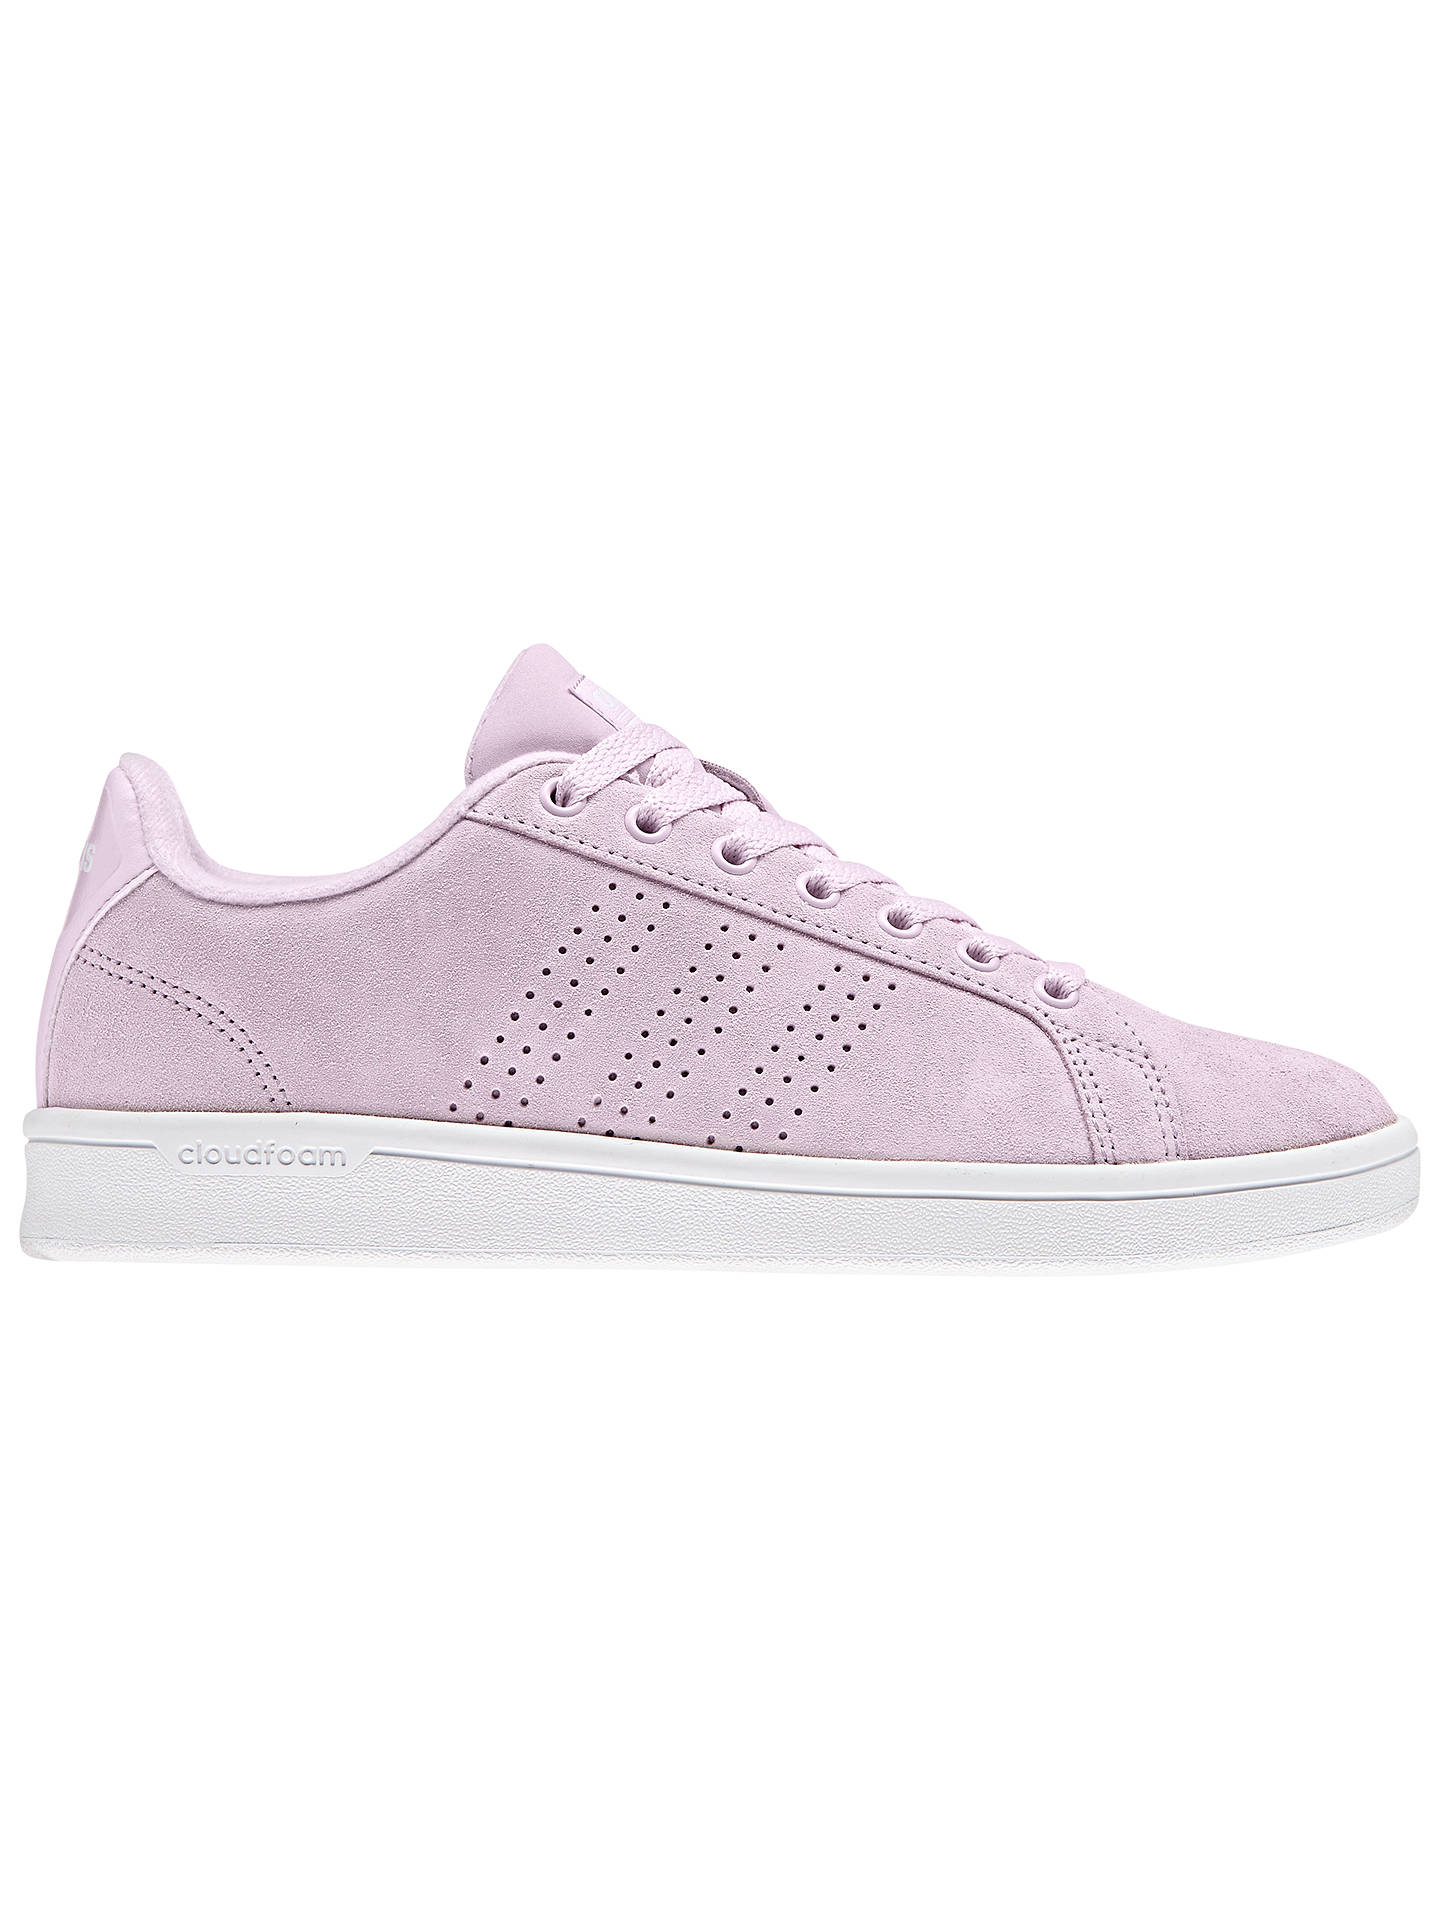 low priced 277a0 750e8 271cd ca540 coupon for buyadidas neo cloudfoam advantage womens trainers  aero pink 4 online at johnlewis. c4a7f